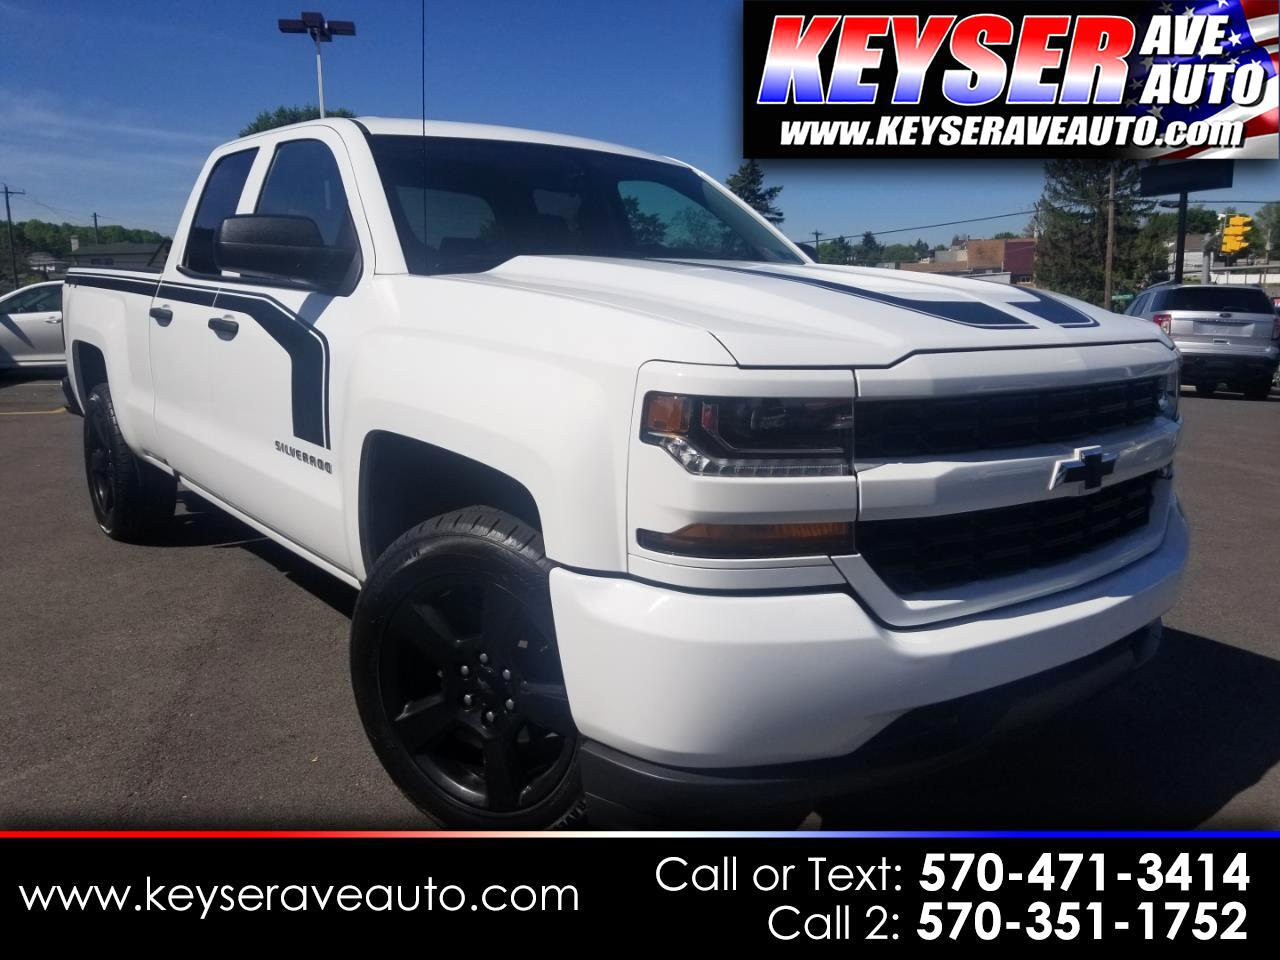 2017 Chevrolet Silverado 1500 Custom Double Cab 4WD 5.3